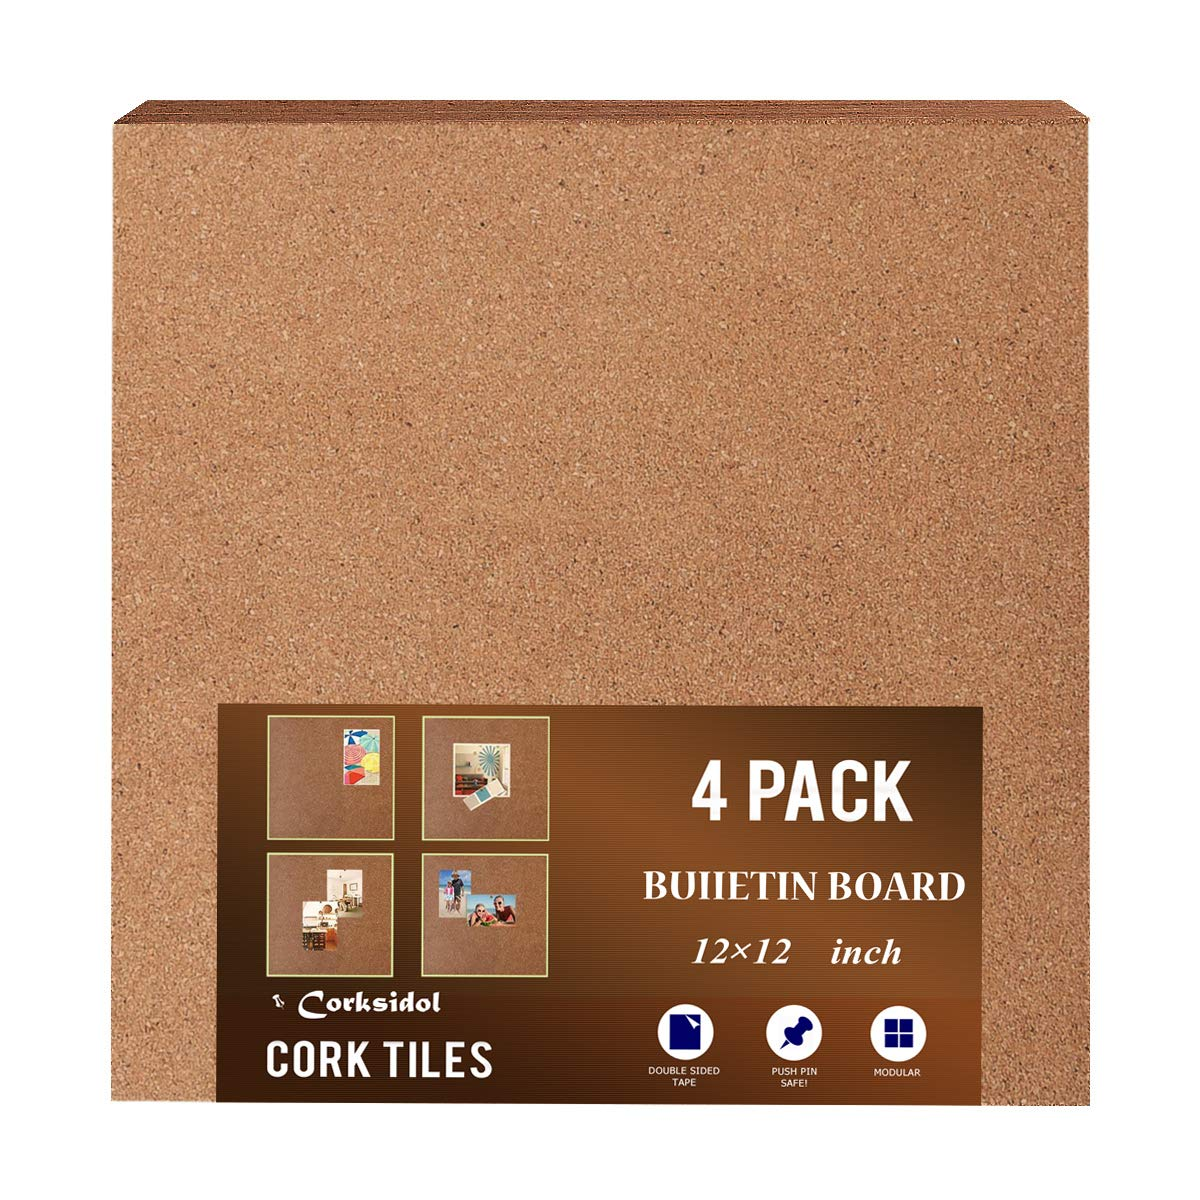 Natural Cork, Cork Board 12' x 12' x 1/2'Tiles(Strong Self Adhesive) for Floor/Wall/DIY(Pack of 4), Corkboard Cork Board 12 x 12 x 1/2Tiles(Strong Self Adhesive) for Floor/Wall/DIY(Pack of 4)